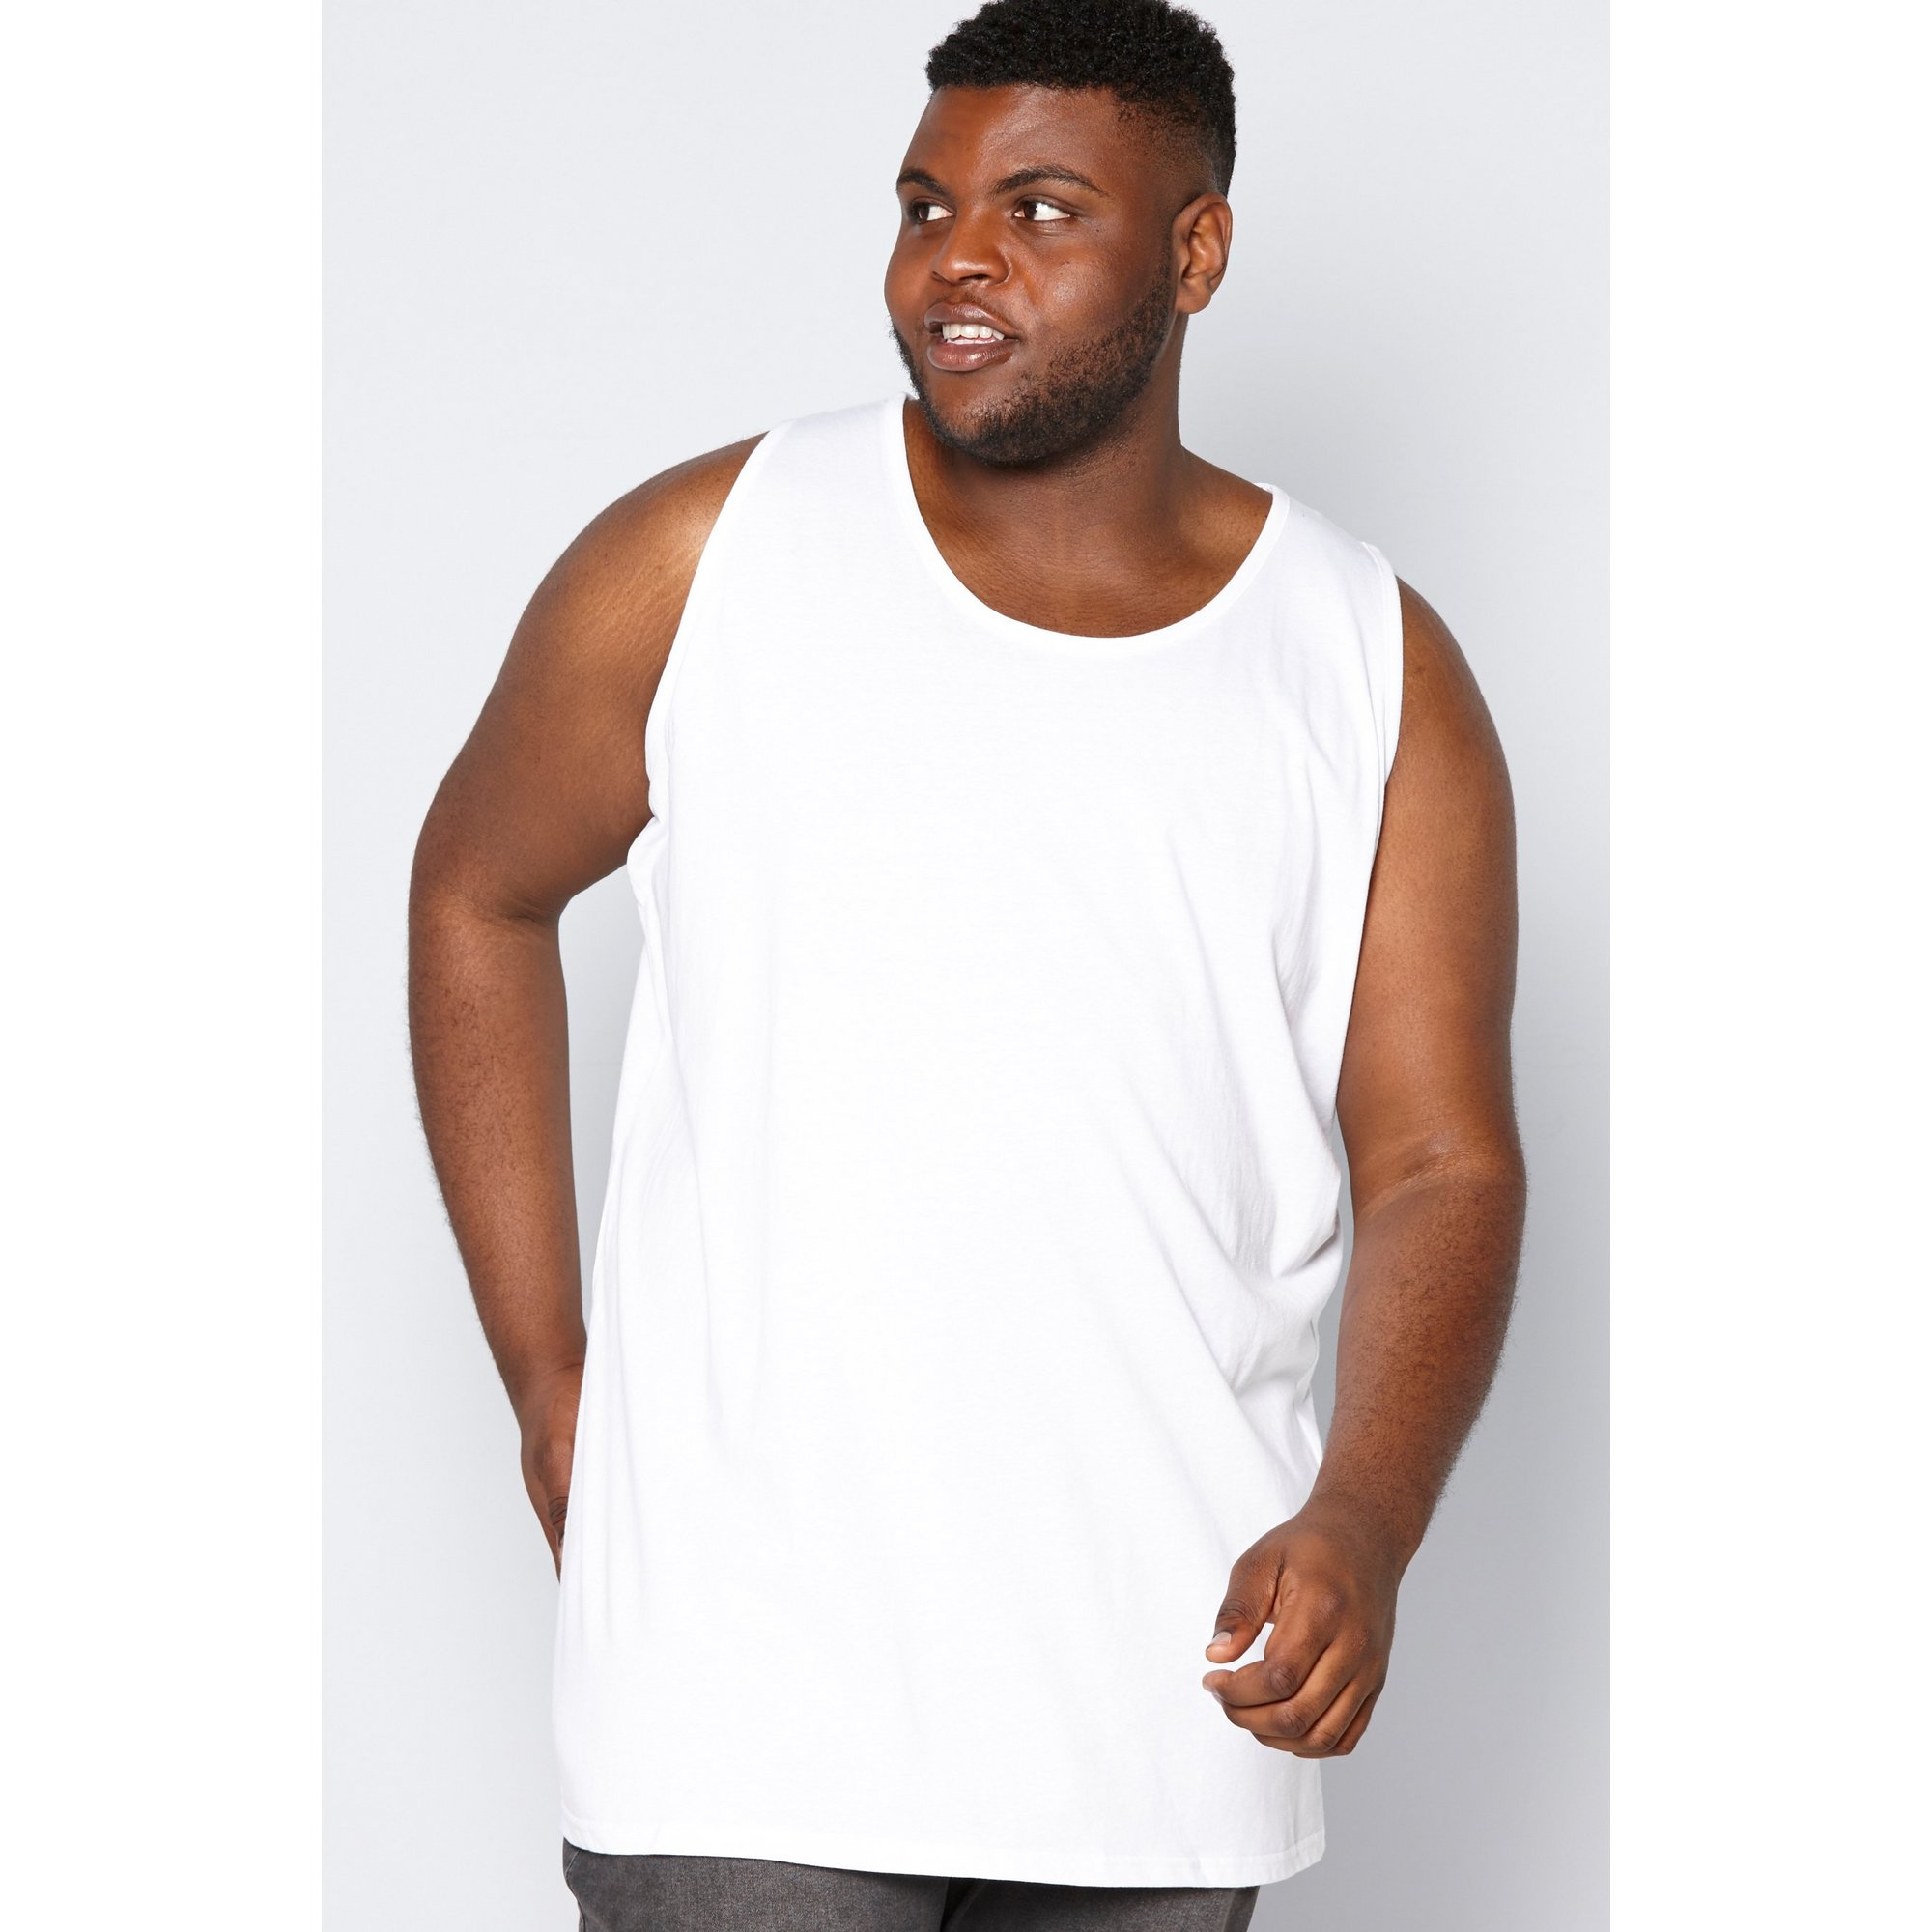 Image of D555 by Duke Big and Tall Muscle Vest